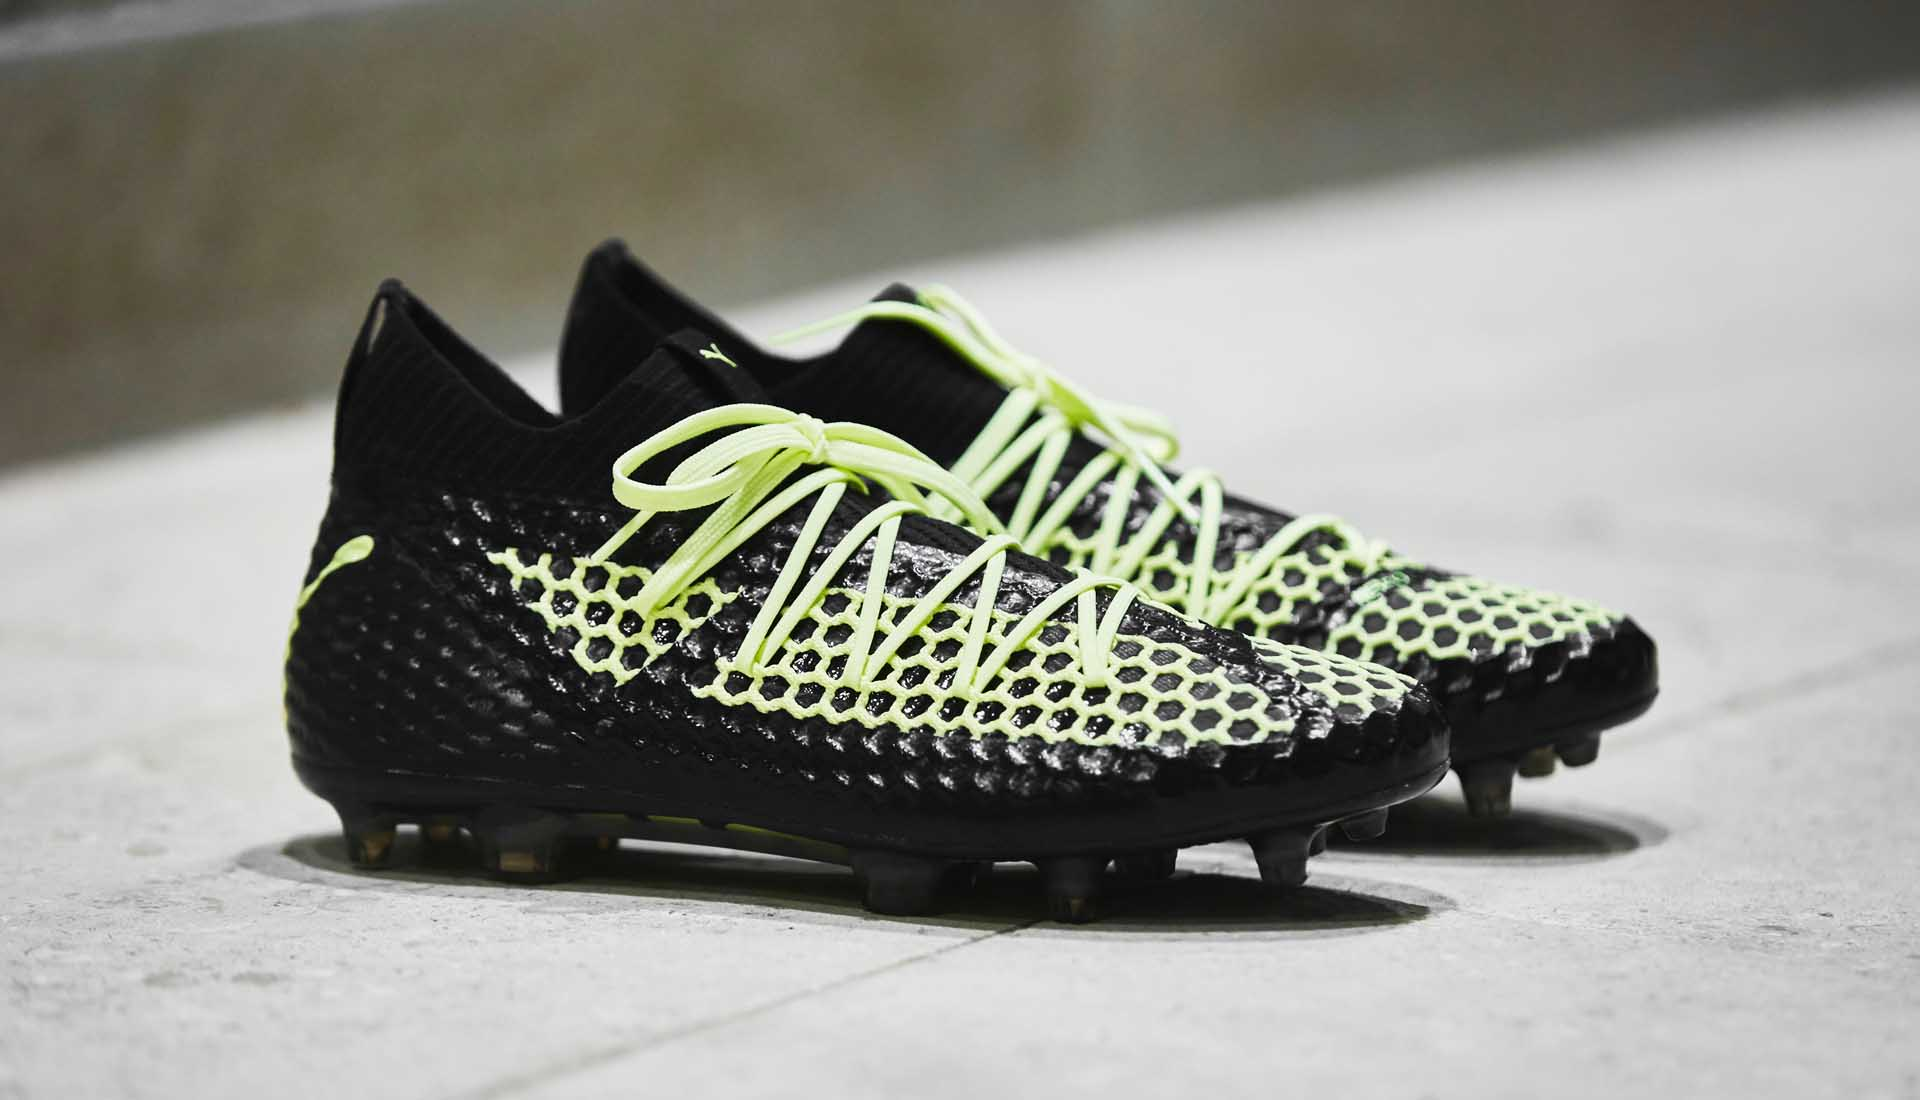 2f9871419d842f PUMA Launch the FUTURE 18.1 NETFIT Football Boots - SoccerBible